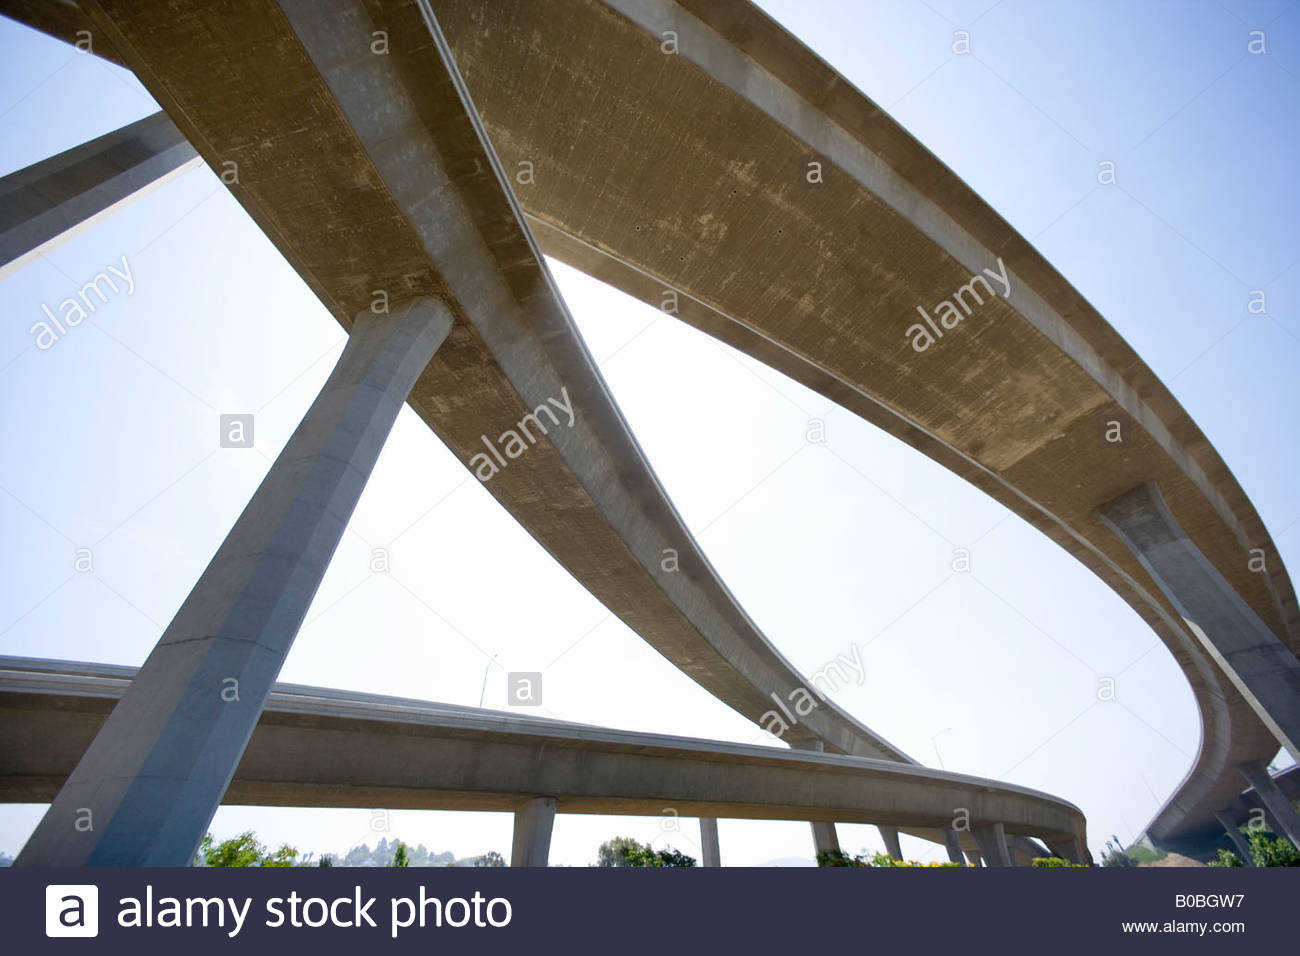 Freeway overpasses, low angle view - Stock Image